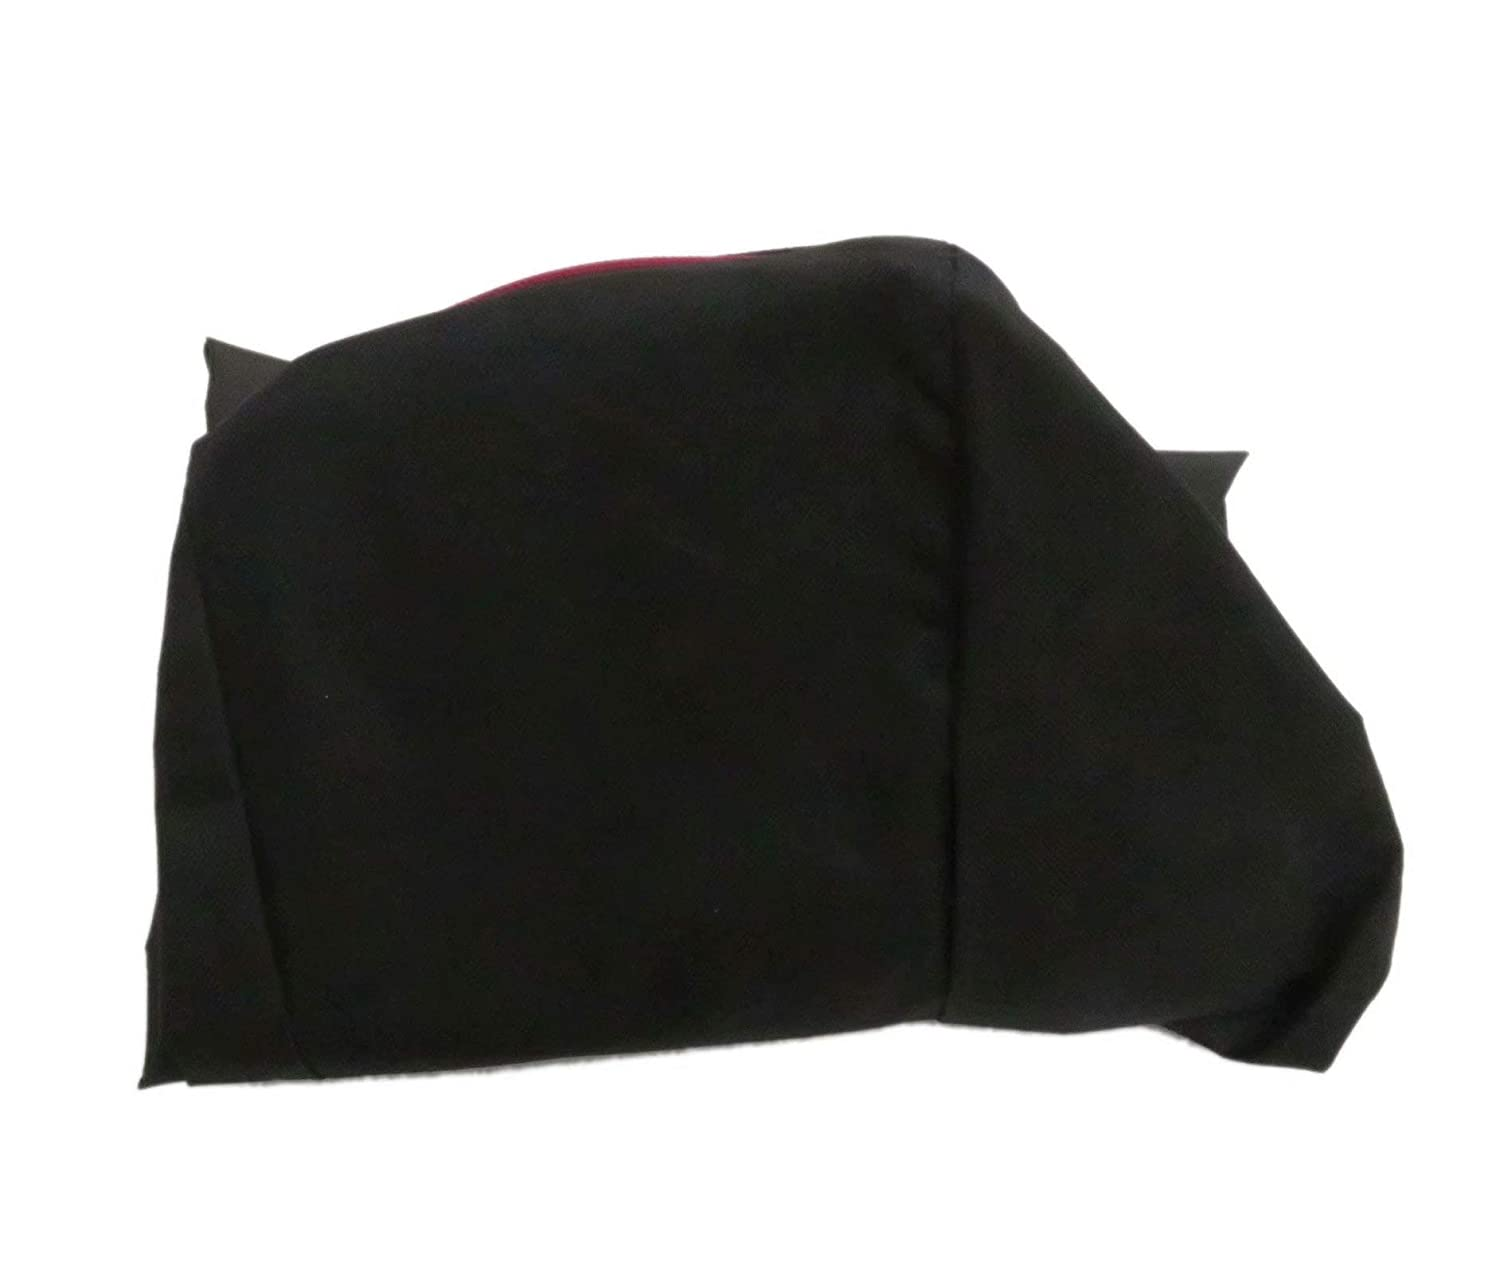 DEEPSOUND Waterproof Soft Winch Cover with 600D Heavy Duty Oxford Fabric Driver Recovery 8,500 to 17,500 Pound Capacit